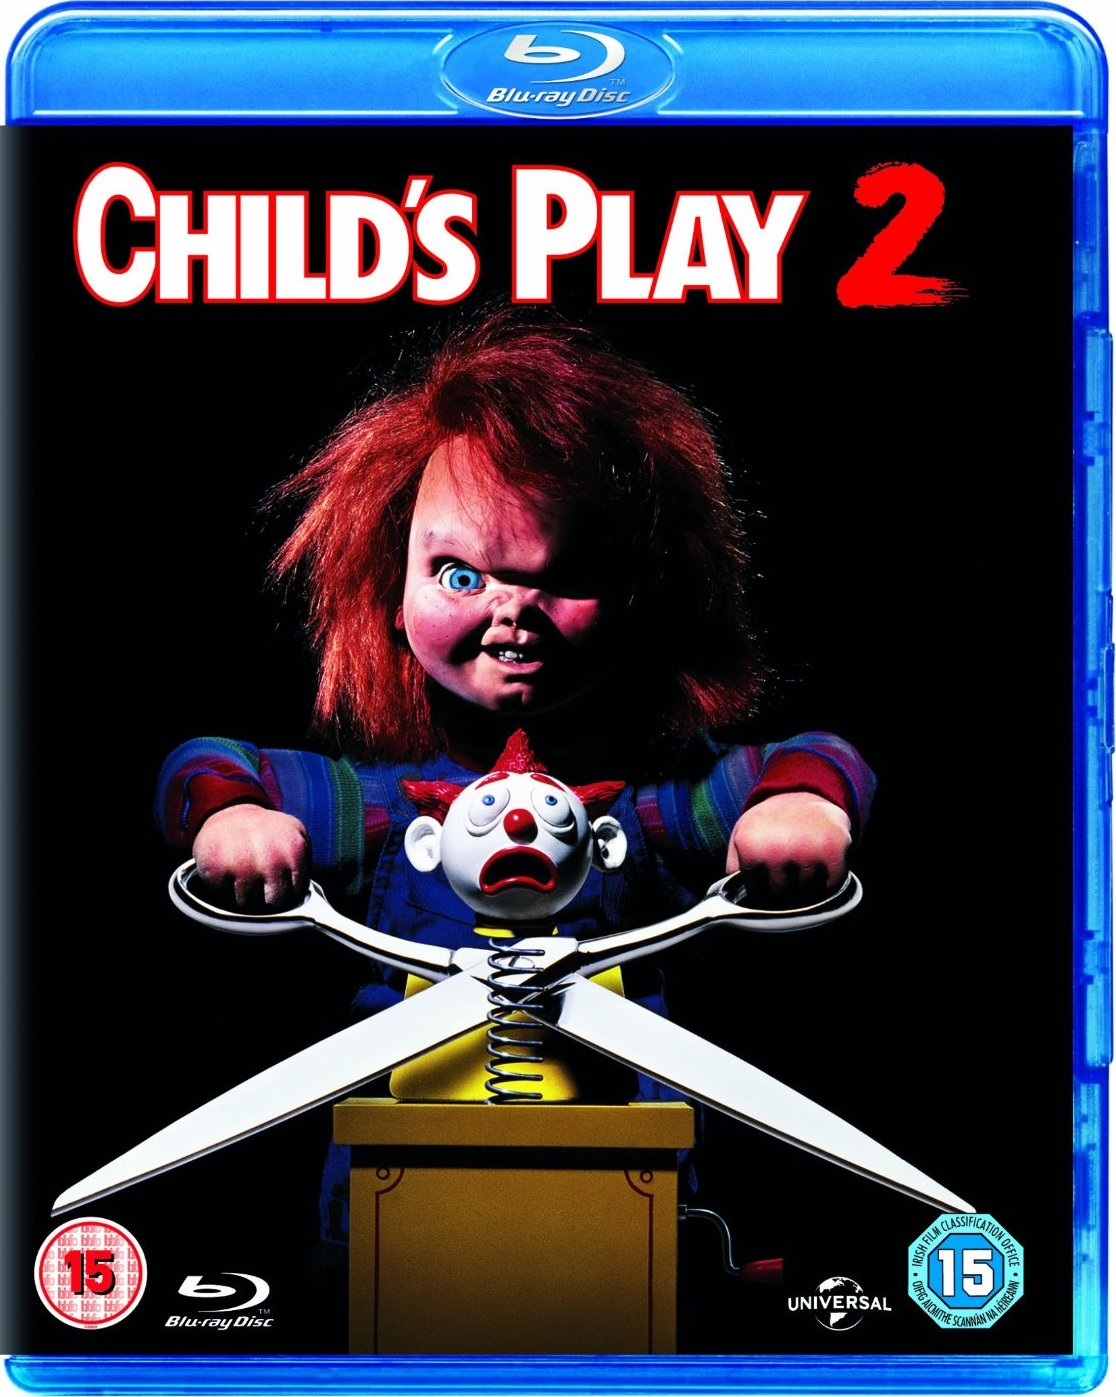 Childs play 2 full movie free learn how to play poker books